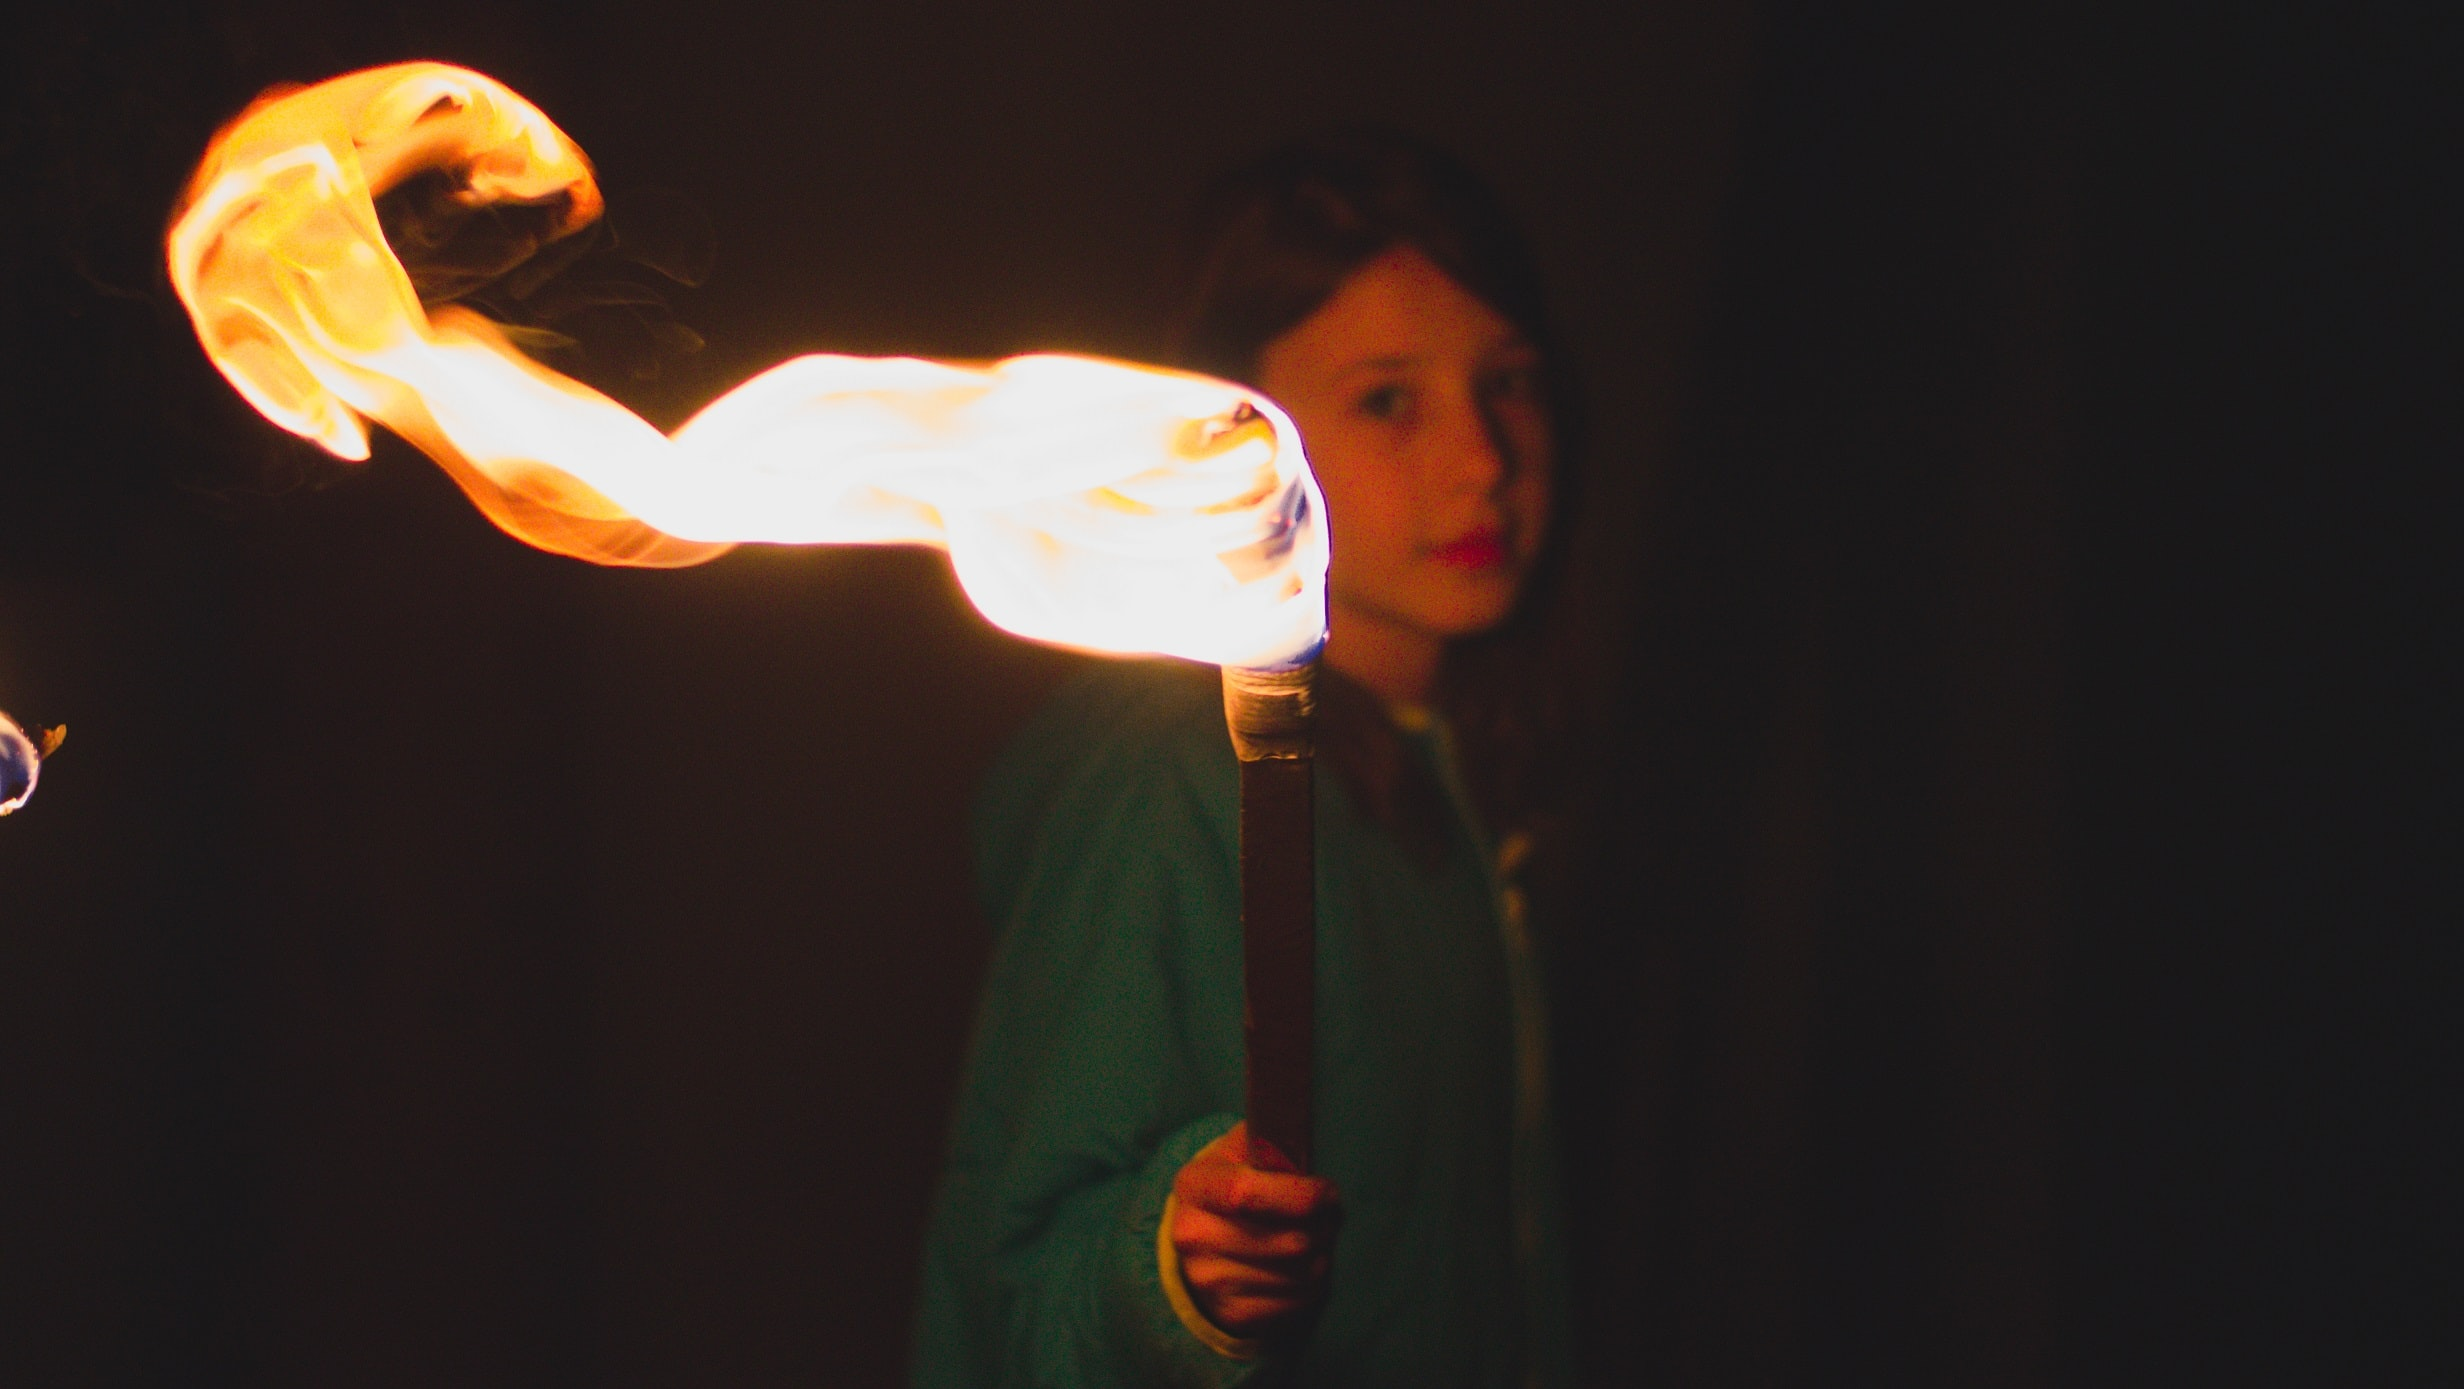 person holding torch during night time